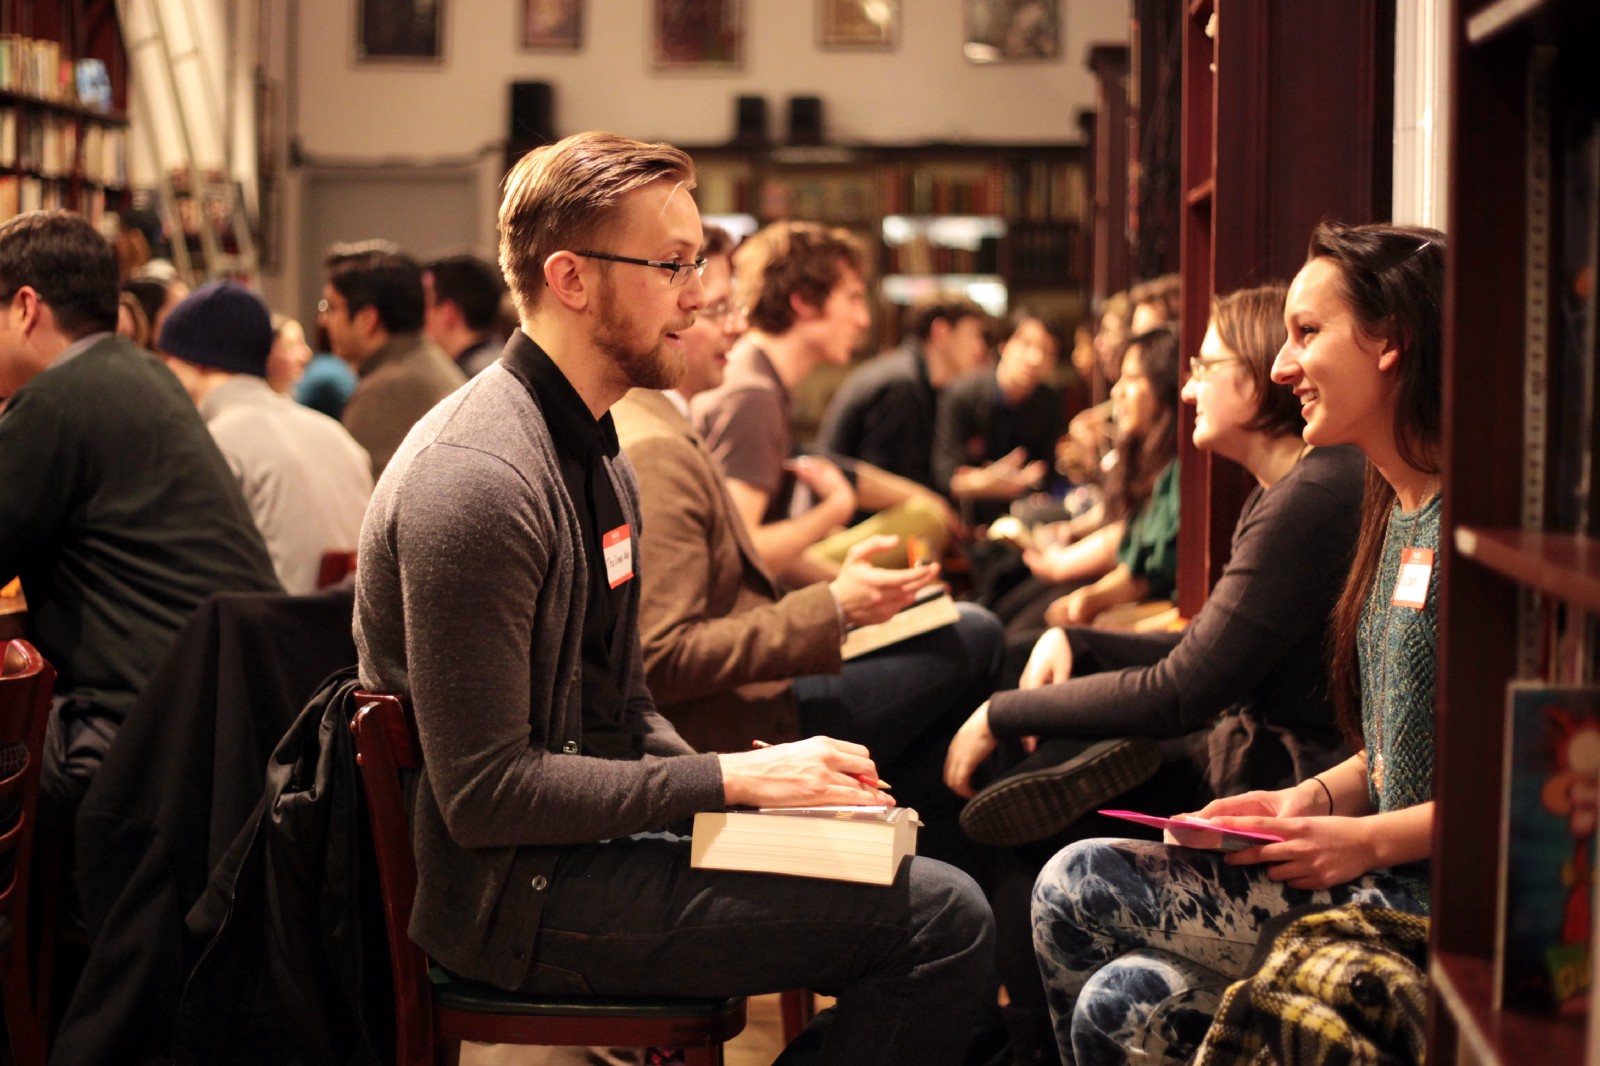 Create a speed dating event